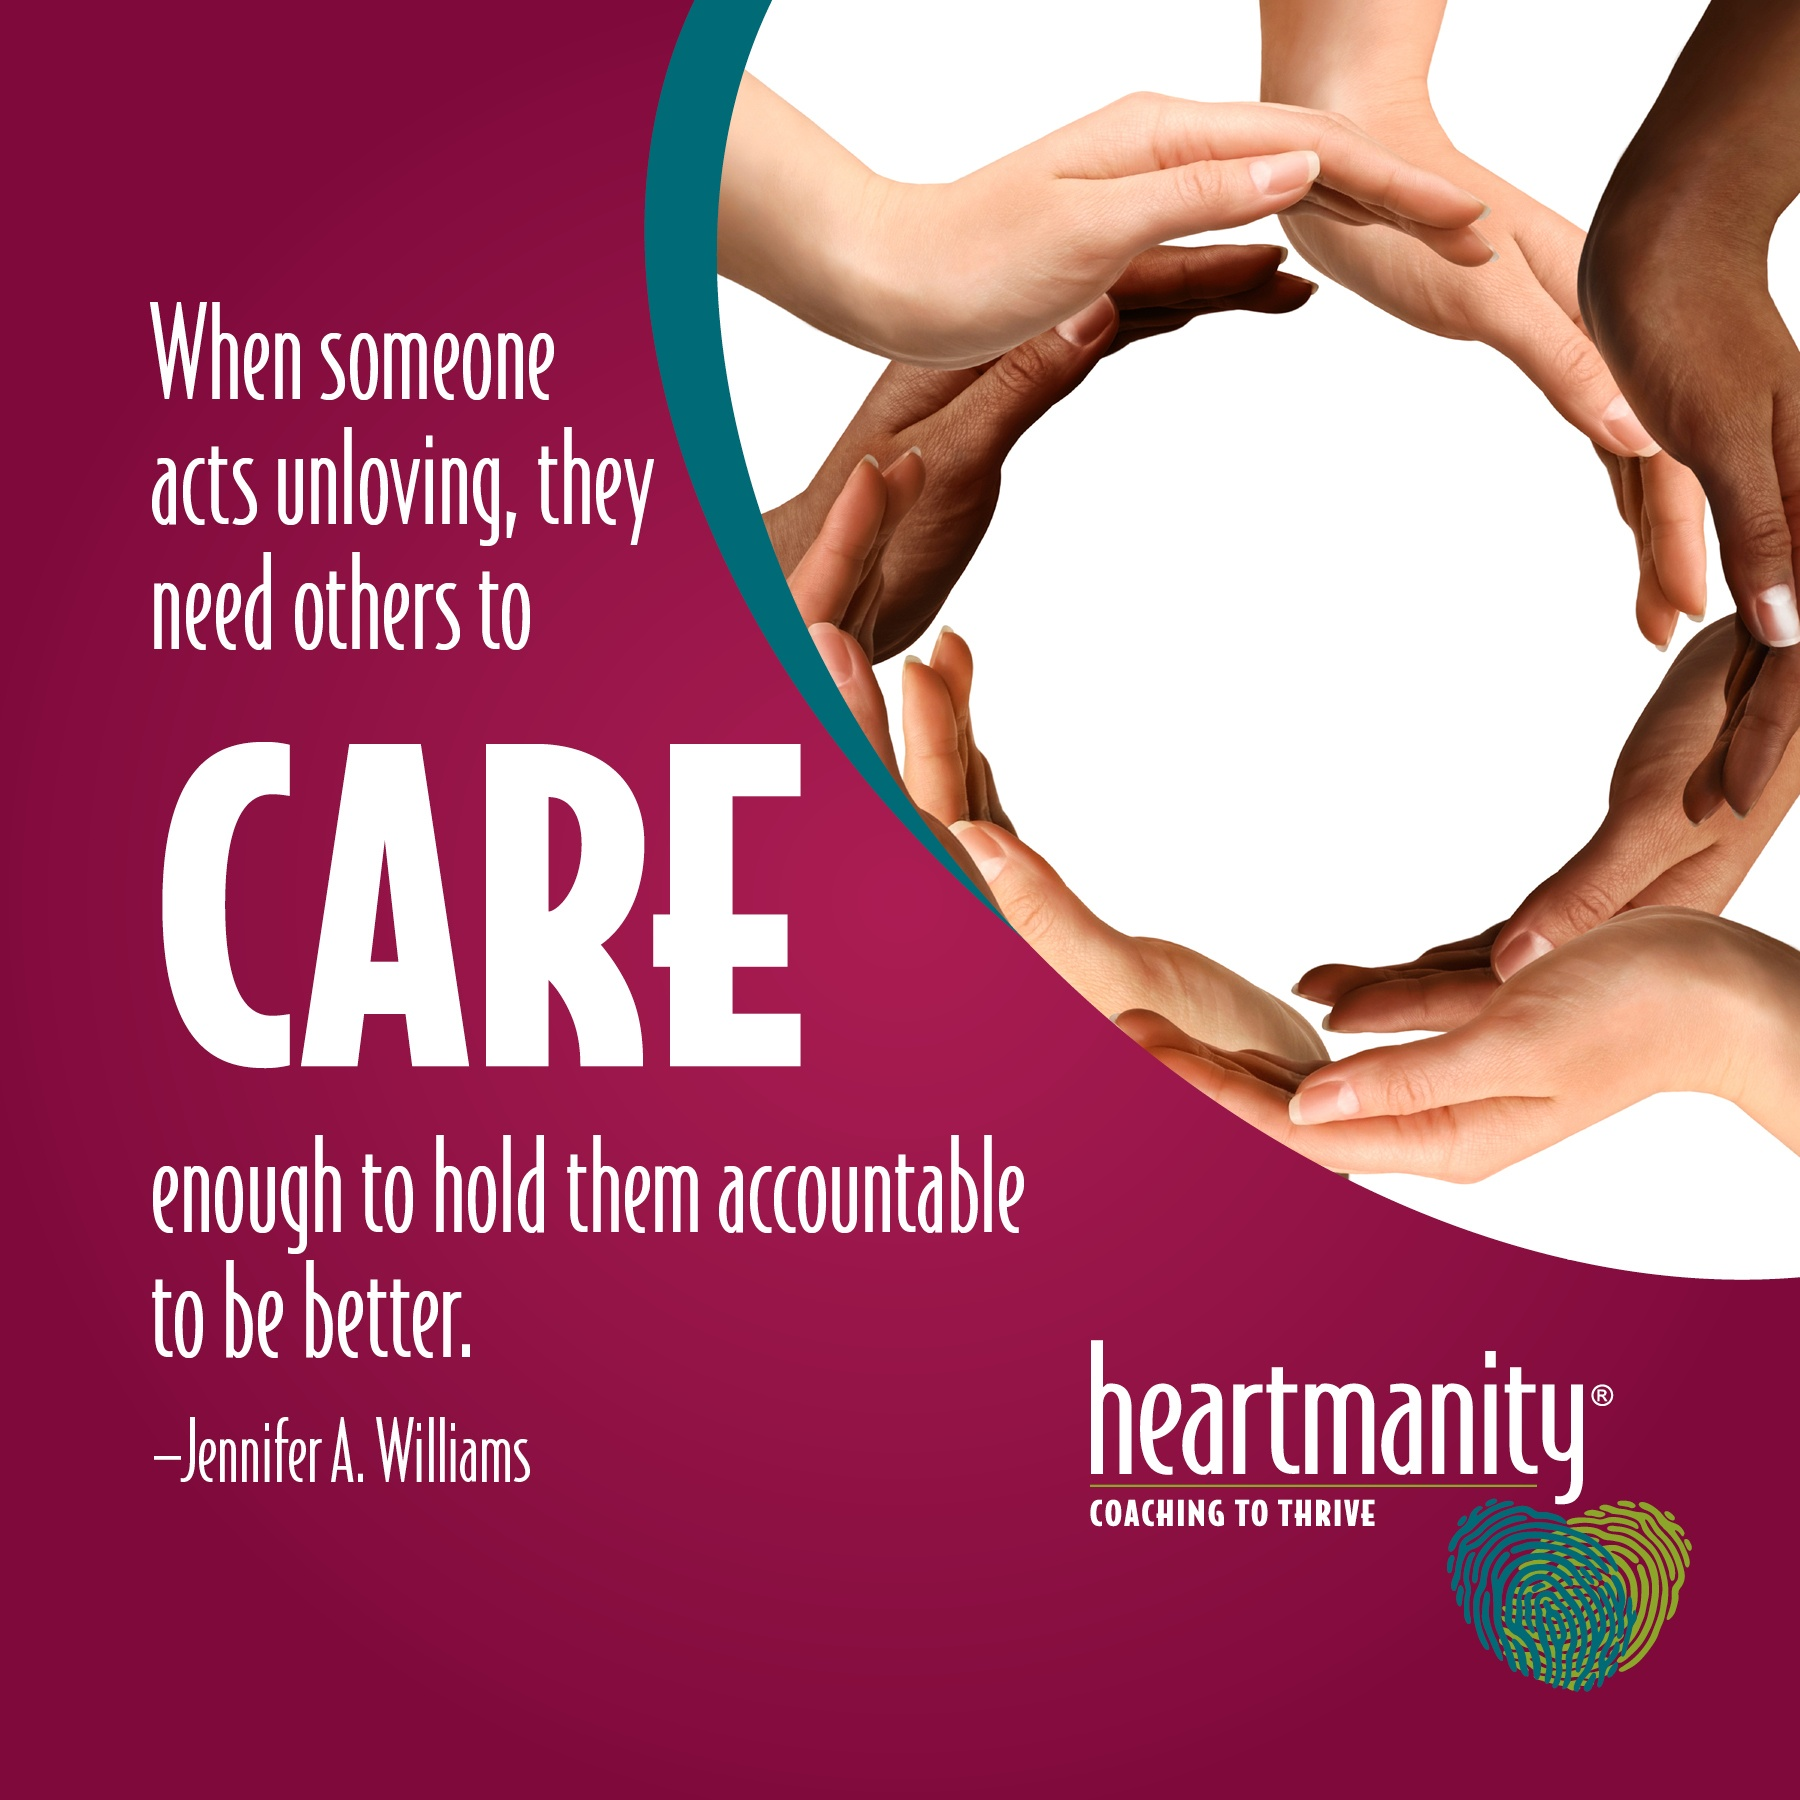 Caring is holding people accountable to be their best self